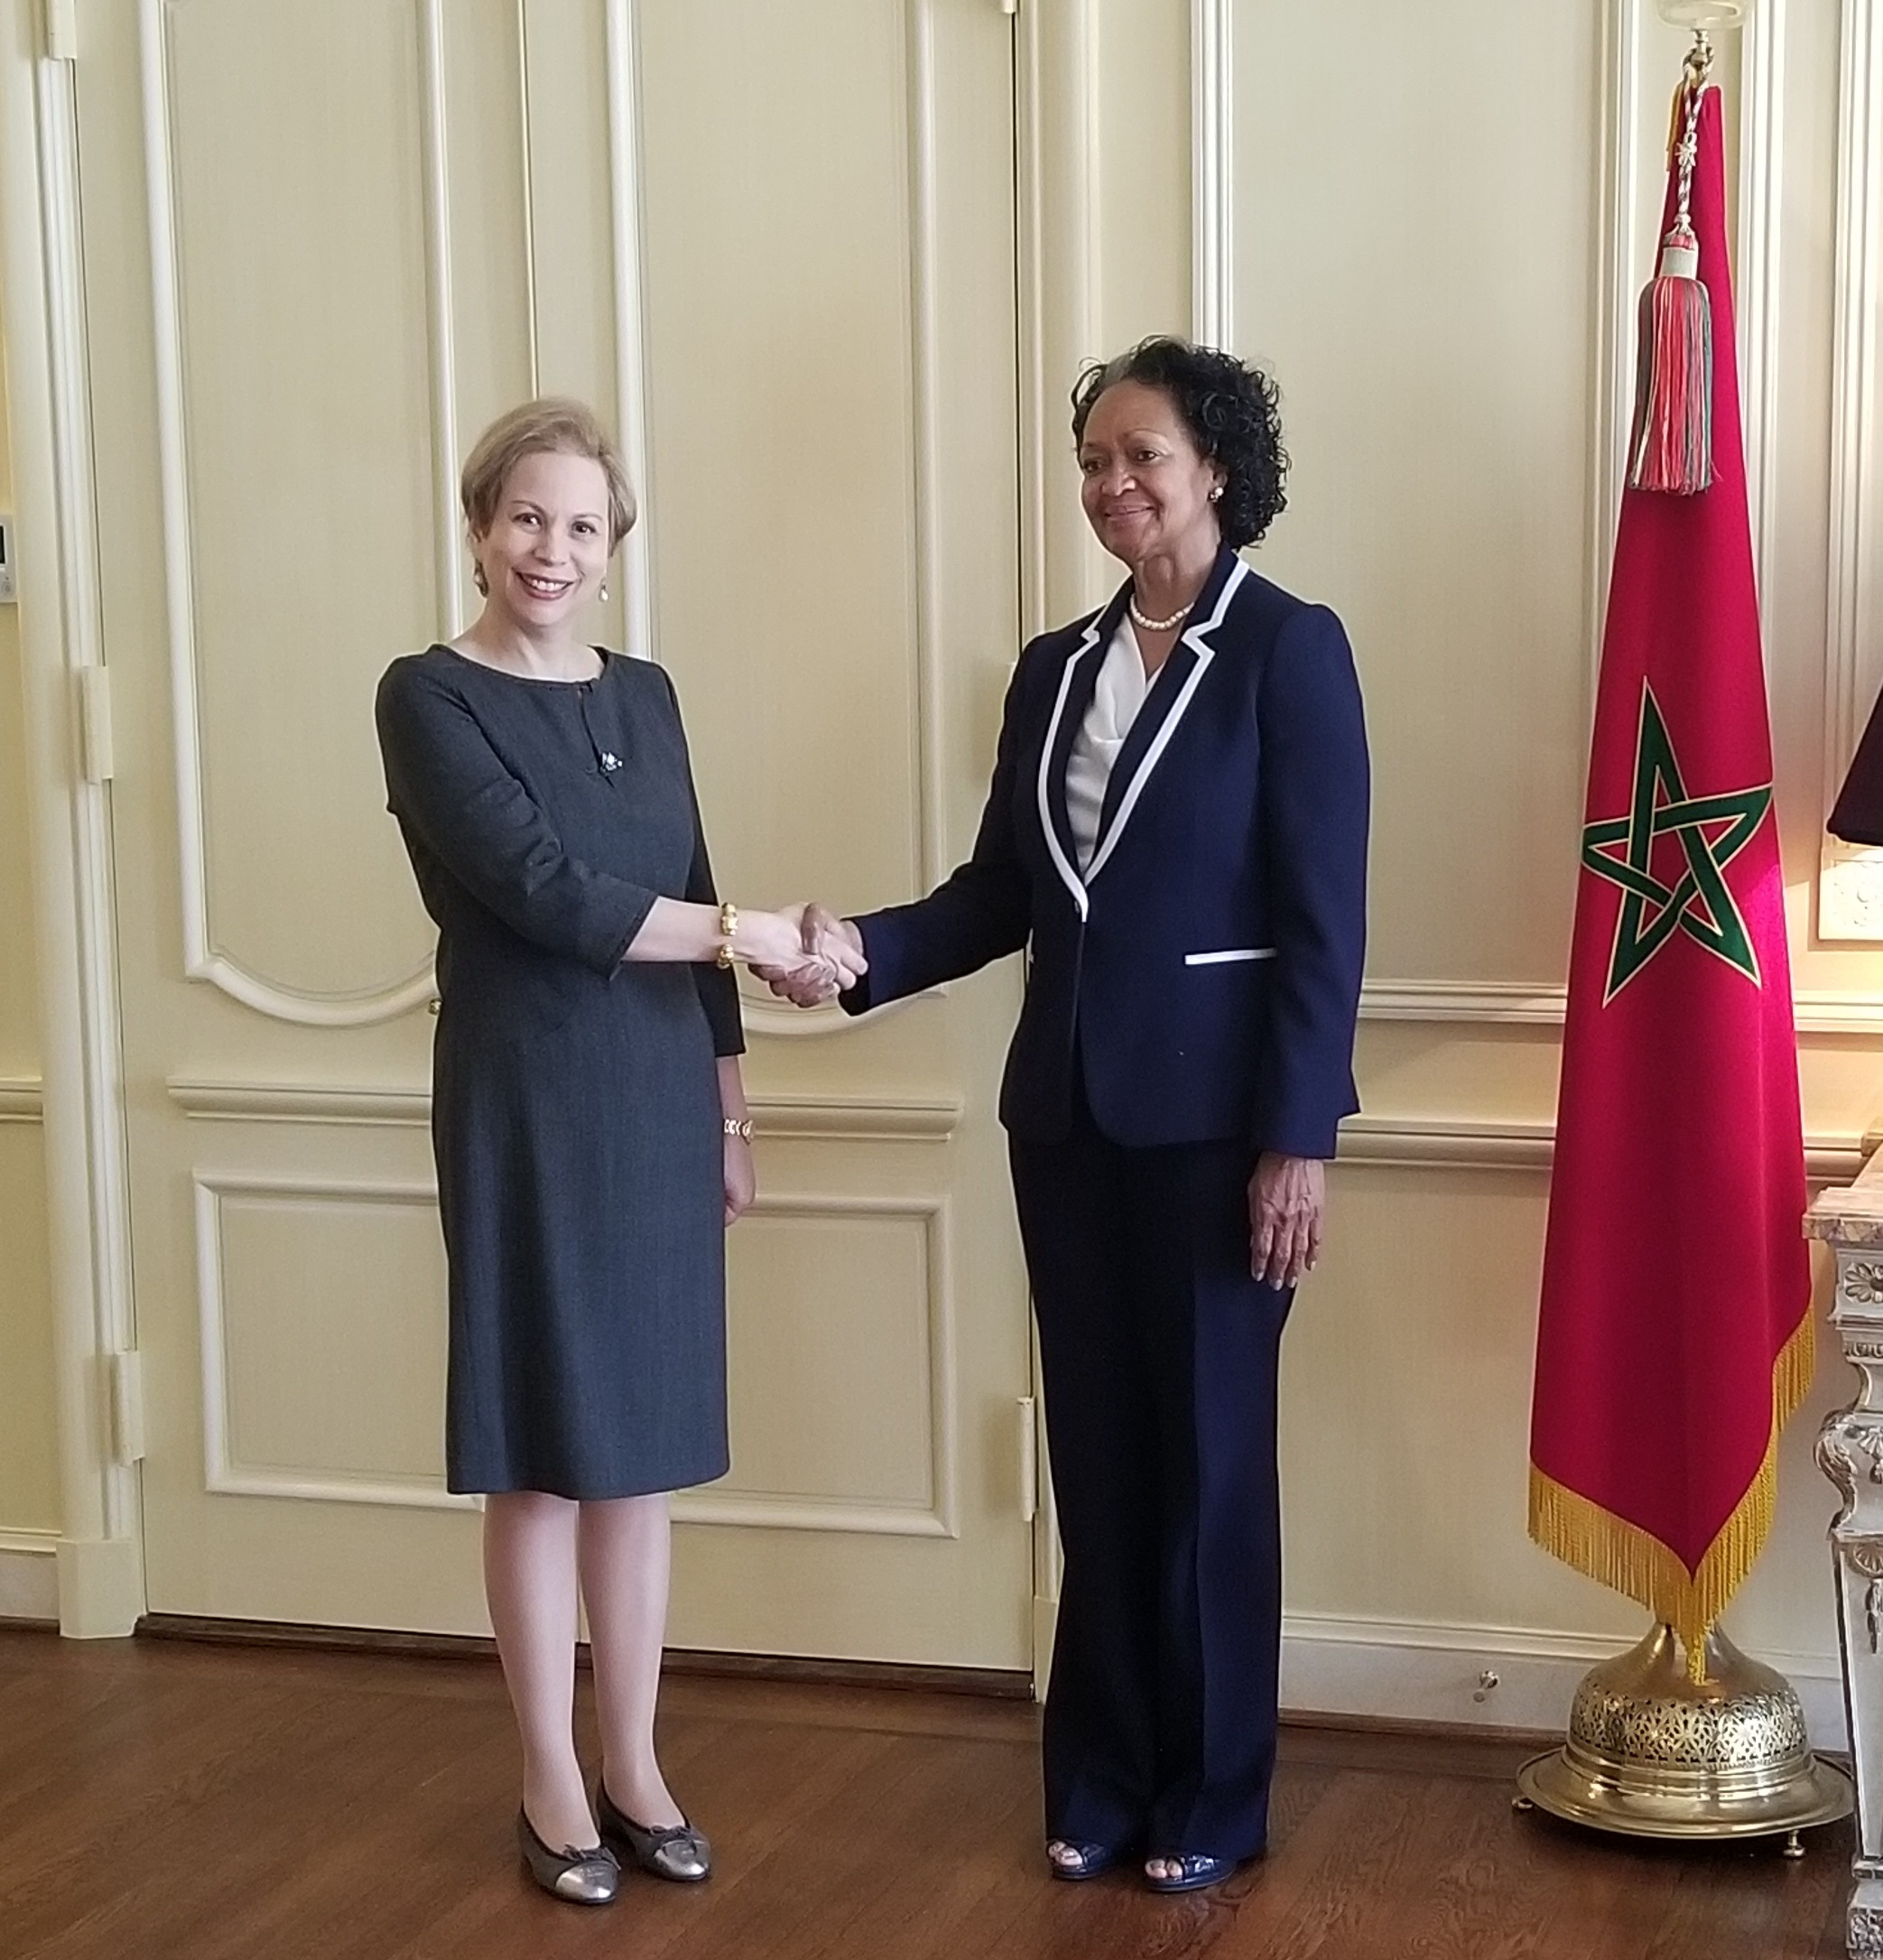 From L to R: Her Highness Princess Lalla Joumala, Ambassador of the Kingdom of Morocco and Florizelle Liser, President and CEO, Corporate Council on Africa